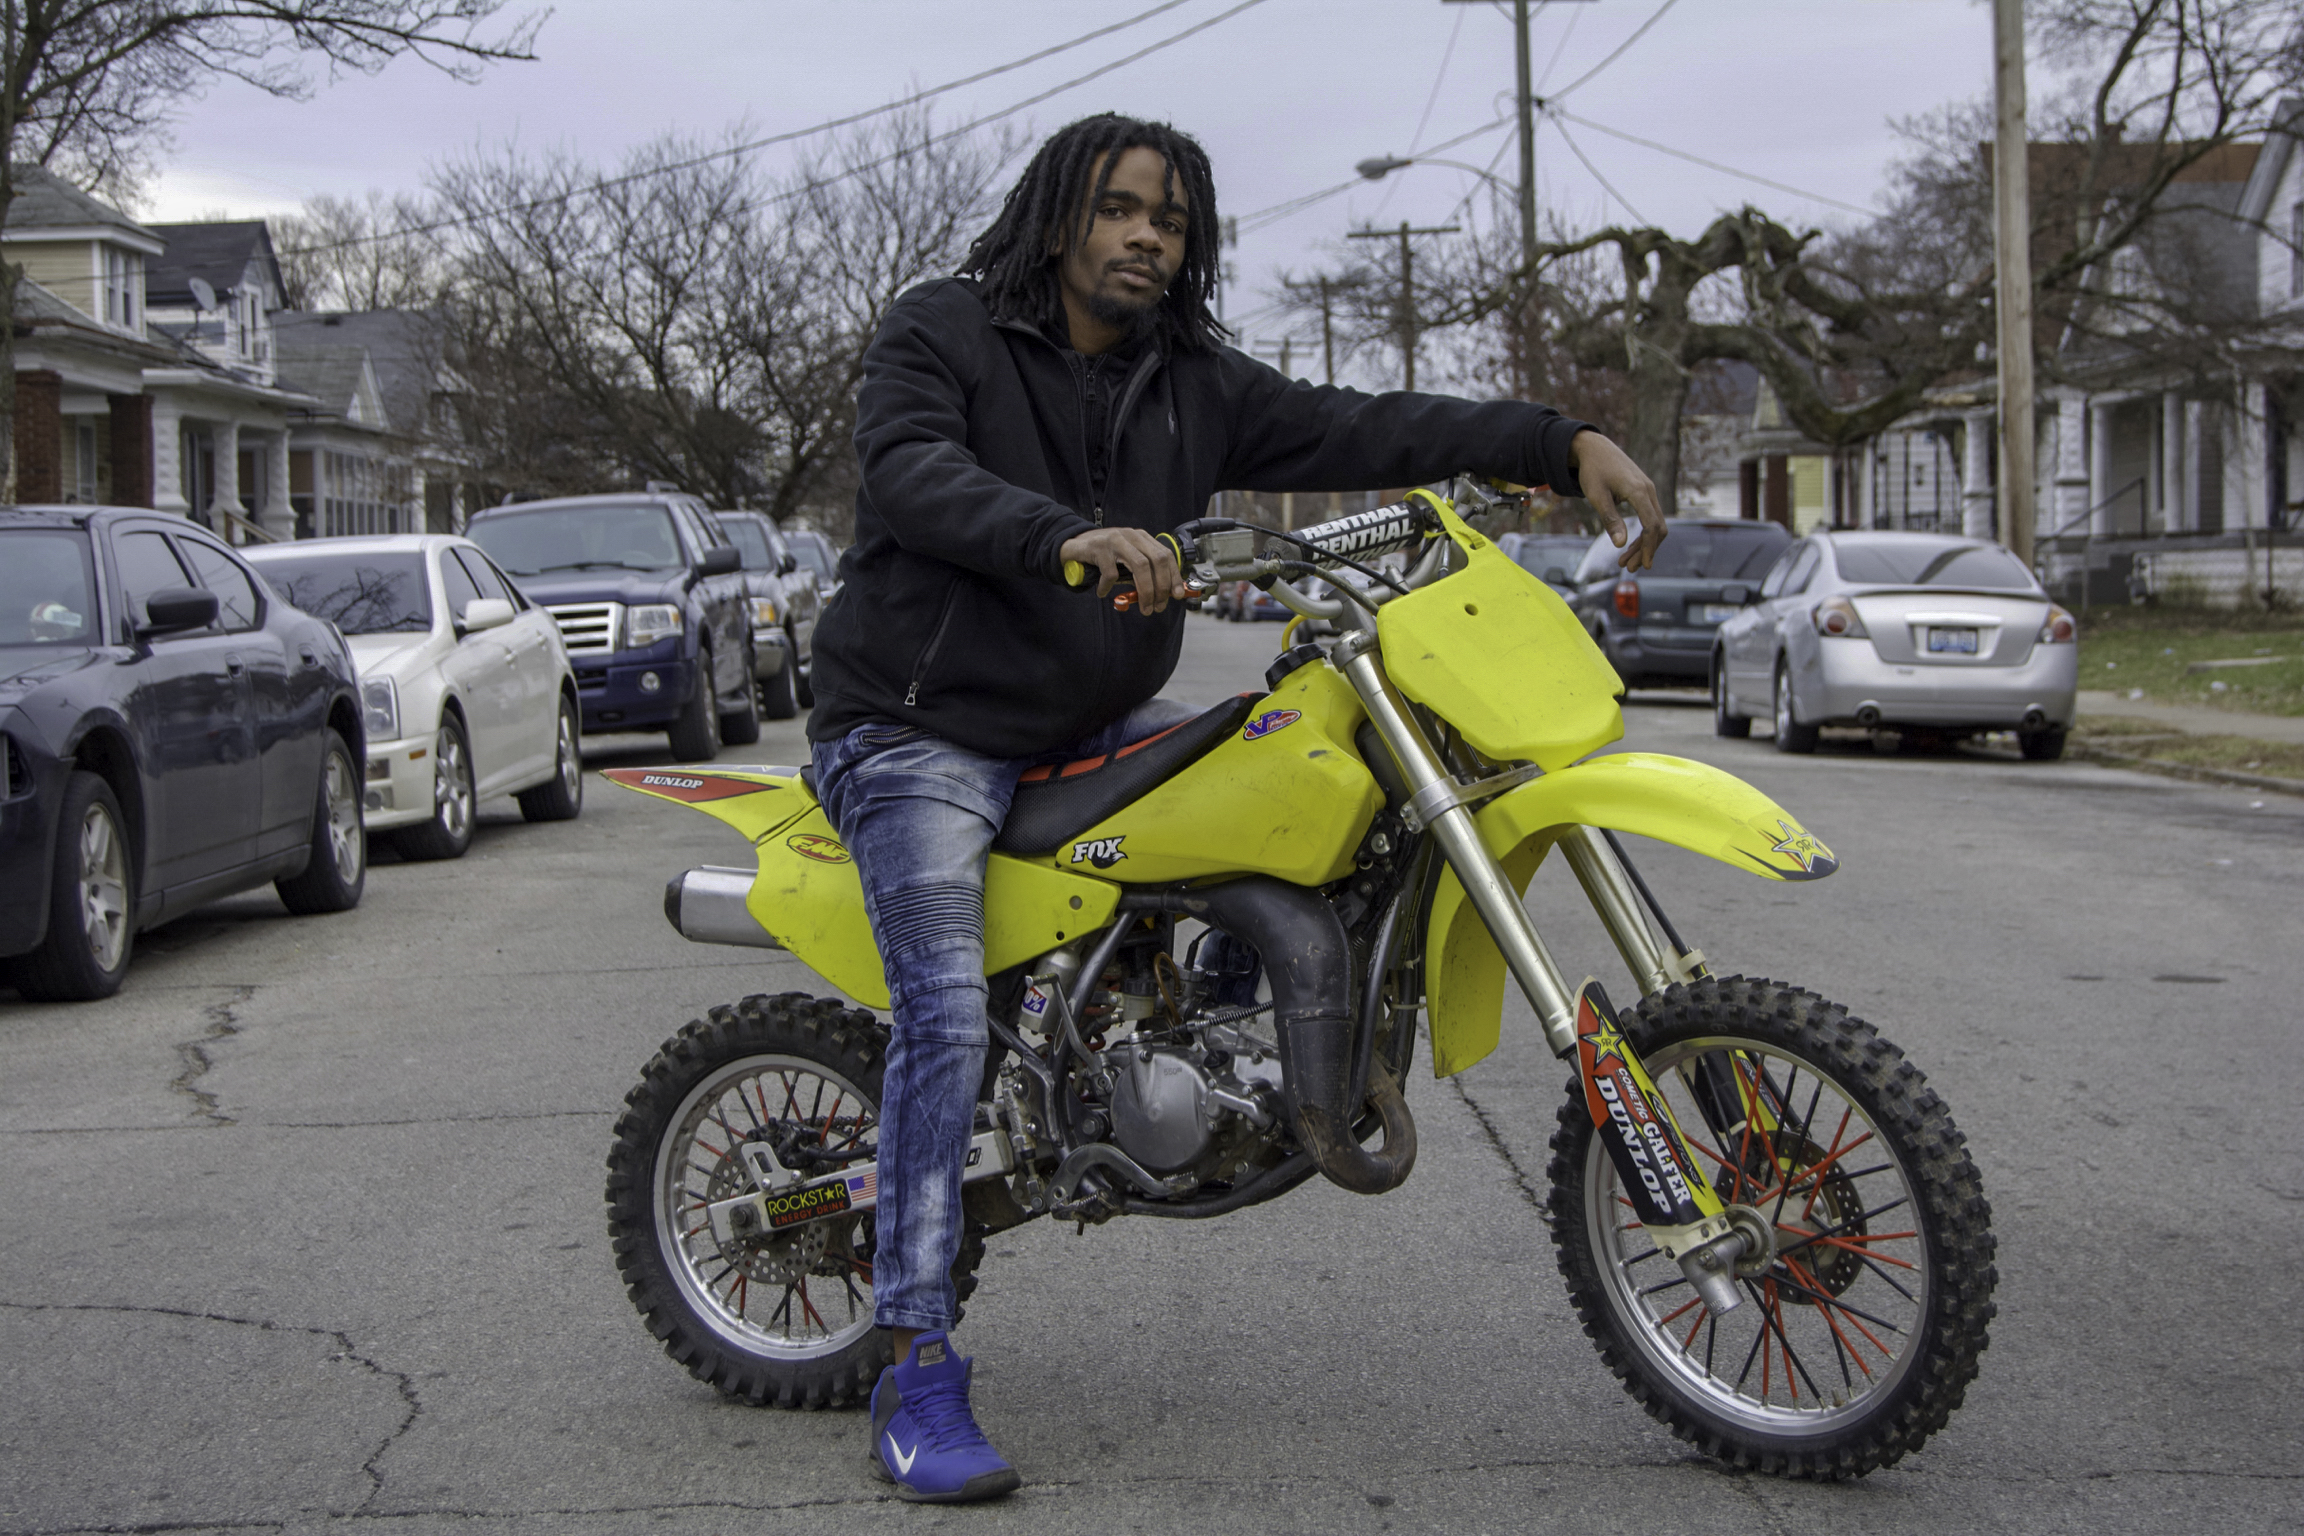 """I'm just trying to promote bikes. If you get on one of these things, it's hard to get off. You ain't finna get in no trouble. I'm not looking for no BS. Basically, I just want to see more people in my neighborhood rides dirt bikes and hopefully, get us a trail over here, one day. I don't wanna keep riding on the streets and worrying about the police. Once you get on one of these, you're not getting off.  This is definitely my passion. It started when I was six years old, when my grandma got me one of those small dirt bikes. When I saw the older kids with their bigger dirt bikes, I always wanted one. The older I got, I would spend my money and buy a bigger bike. I just bought this bike. I just lost a bike, last year, and broke my leg. My leg was broken and I bought another bike and I rode with a broken leg. This is my passion. Regardless, I'm going to ride a bike.  I'm not doing nothing else. It's not like I'm out here, doing anything bad. The police look at us like we're doing something bad but I'm not bothering nobody. You got cars with mufflers and all extra types of exhaust modifiers and stuff. I don't come out late at night or very early in the morning; the afternoon is good for me. I don't bother nobody, man.  I want everyone, around me, to ride because it's boring doing it by yourself. I want to start my own garage and work on them. Once you get everybody on it, I'll get you running for free but after that, throw me a little something and I'll work on your bike. I want to get me a little garage. We don't have nothing down here that will fix this. I gotta work on this by myself. There's no where, around here, that I can take this bike to. There's not one professional place for it. I gotta do it myself.  Find you a passion. If you find a passion, you'll stay out of harm's way. If you find a passion, you're gonna wanna do it all the time; it's like an addiction. You're not worried about nothing else going on around you. When I'm flying through these streets, I'm having fun. I'm not even looking at what's going on around me. All I know is me on this bike, on this road."" - Jeff, California"